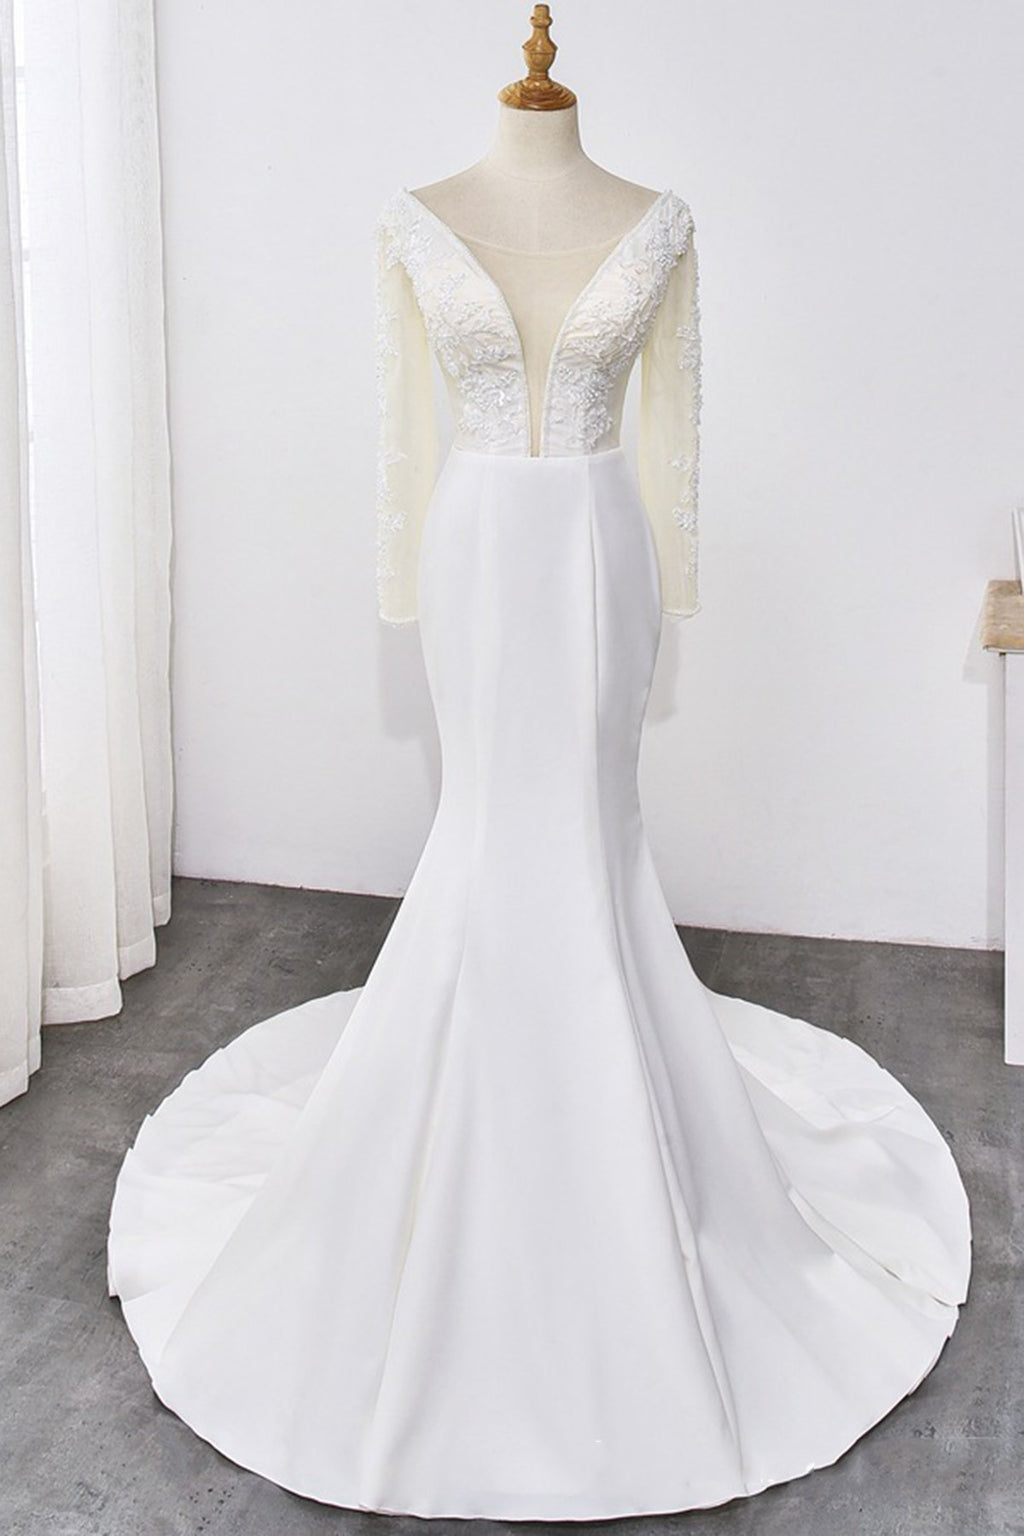 Handmade Crystal Long-Sleeved Deep V-Neck Wedding Dress Wedding Dress S White